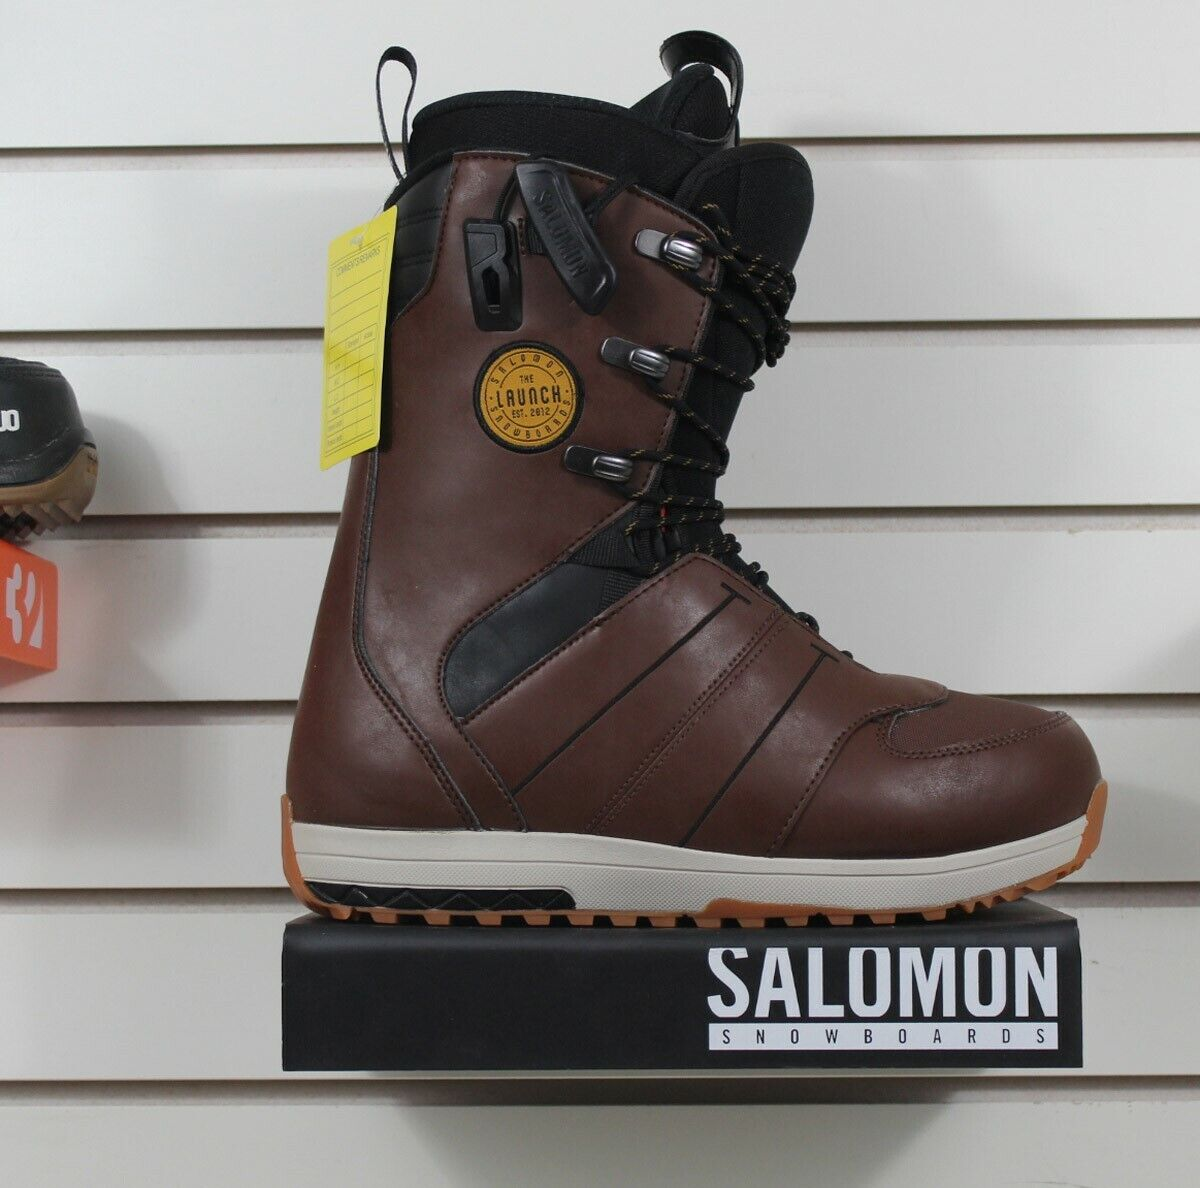 New 2018 Salomon Launch Lace Snowboard Boots Mens Size 9.5 B